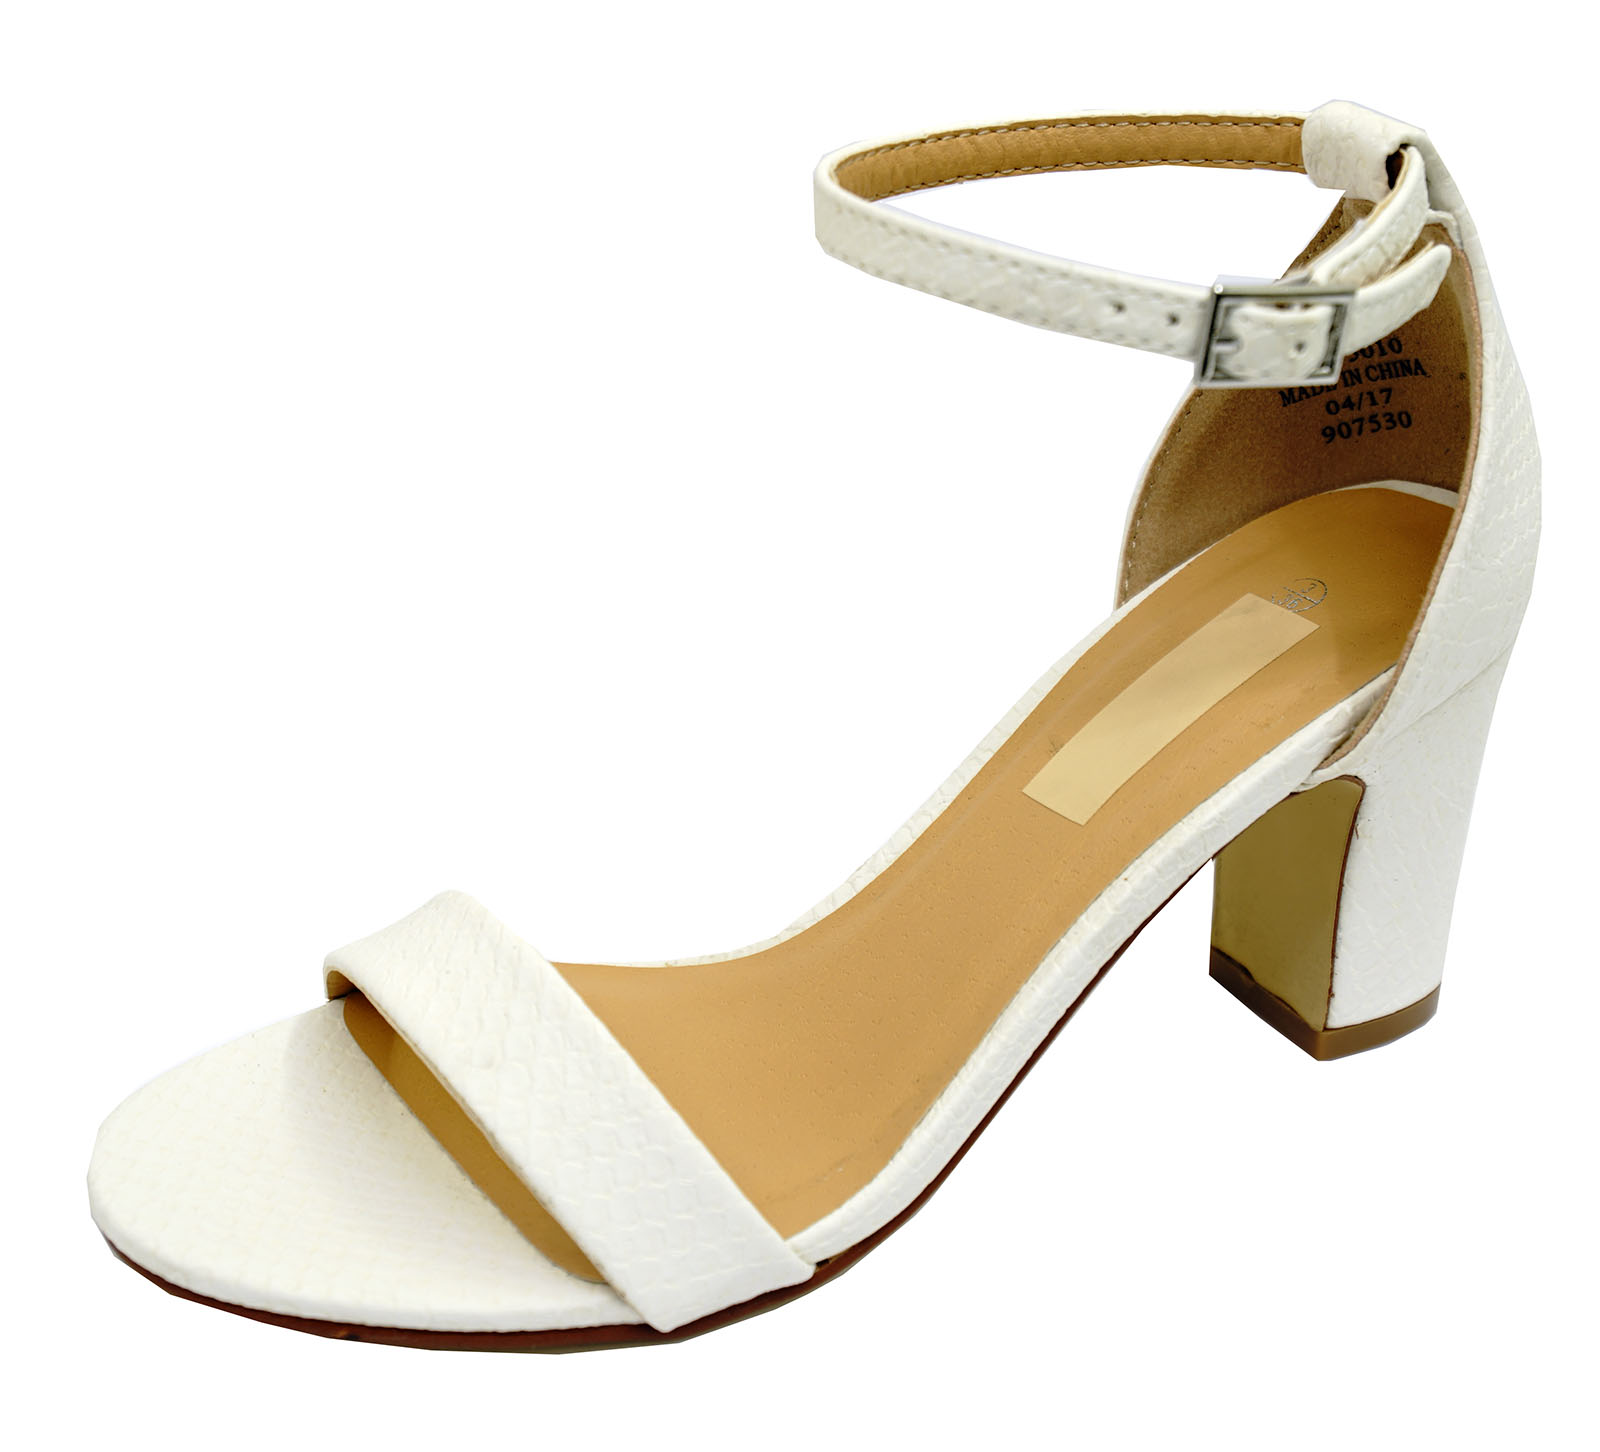 LADIES-WHITE-ANKLE-STRAP-BLOCK-HEEL-PEEPTOE-SANDALS-HOLIDAY-COMFY-SHOES-UK-3-8 thumbnail 18